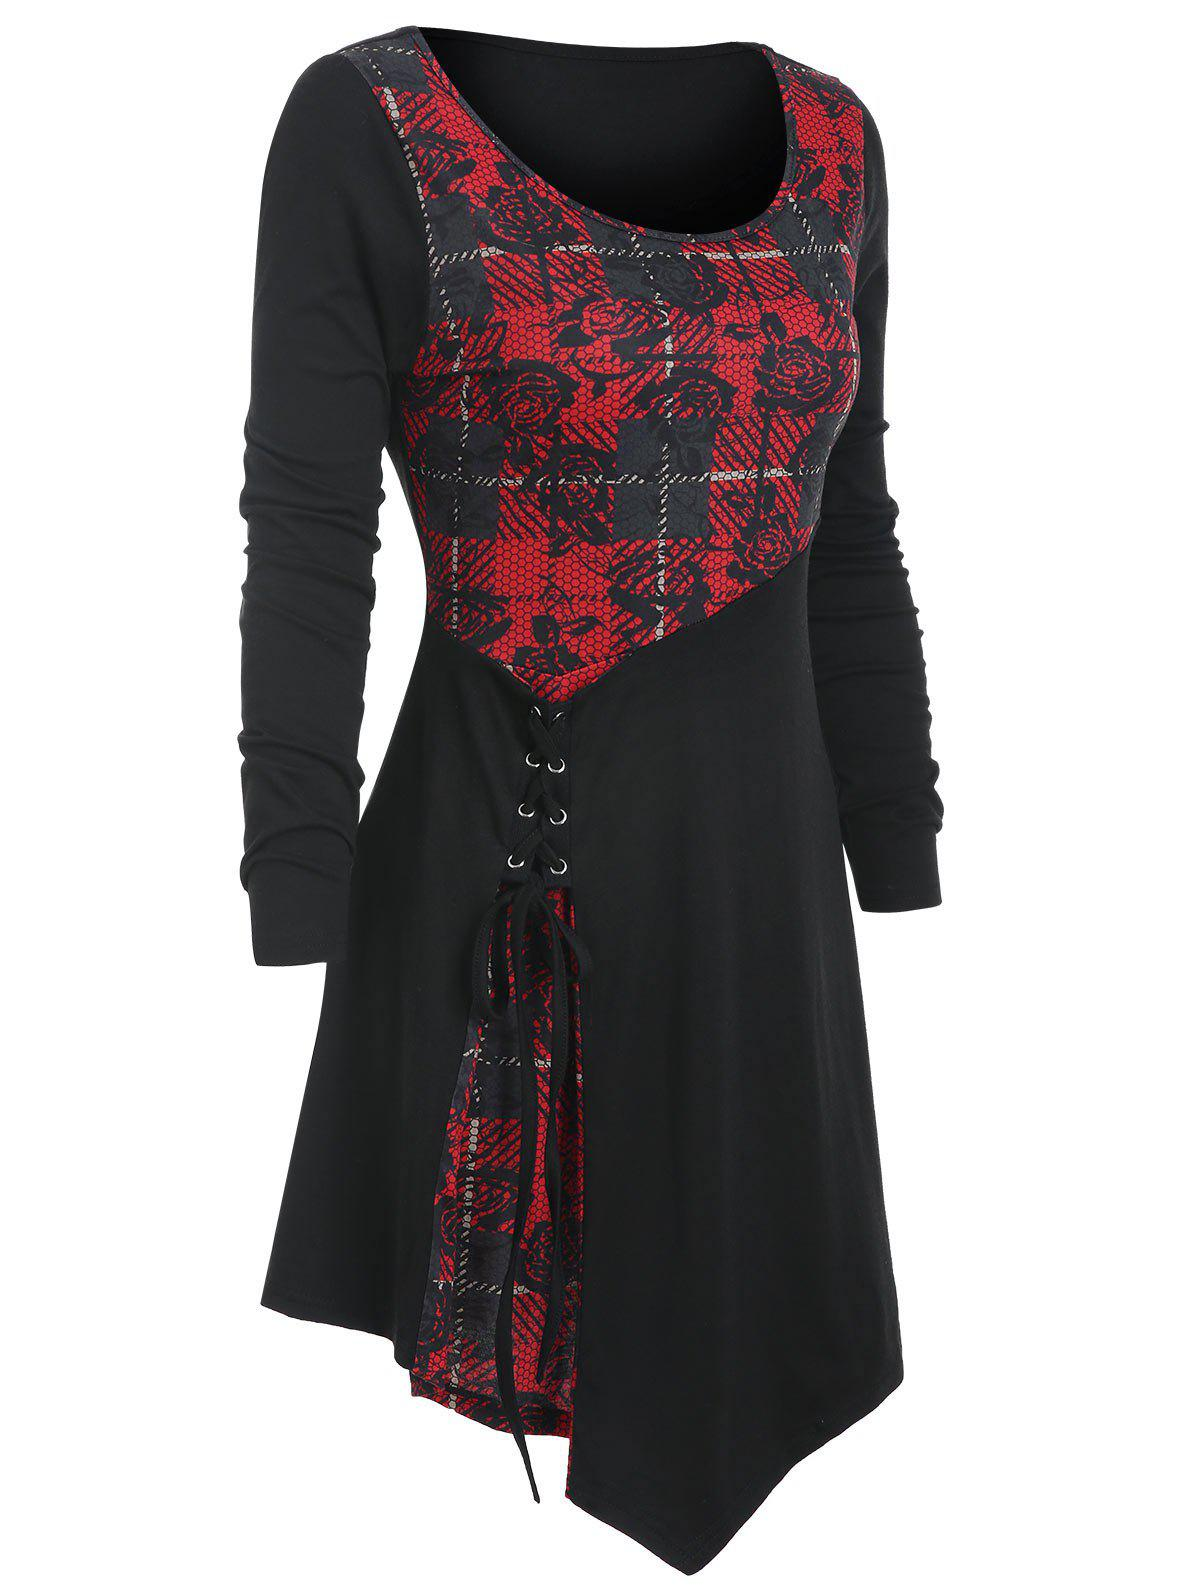 Gothic Plaid Flower Print Lace Up Longline T-shirt - RED WINE 3XL